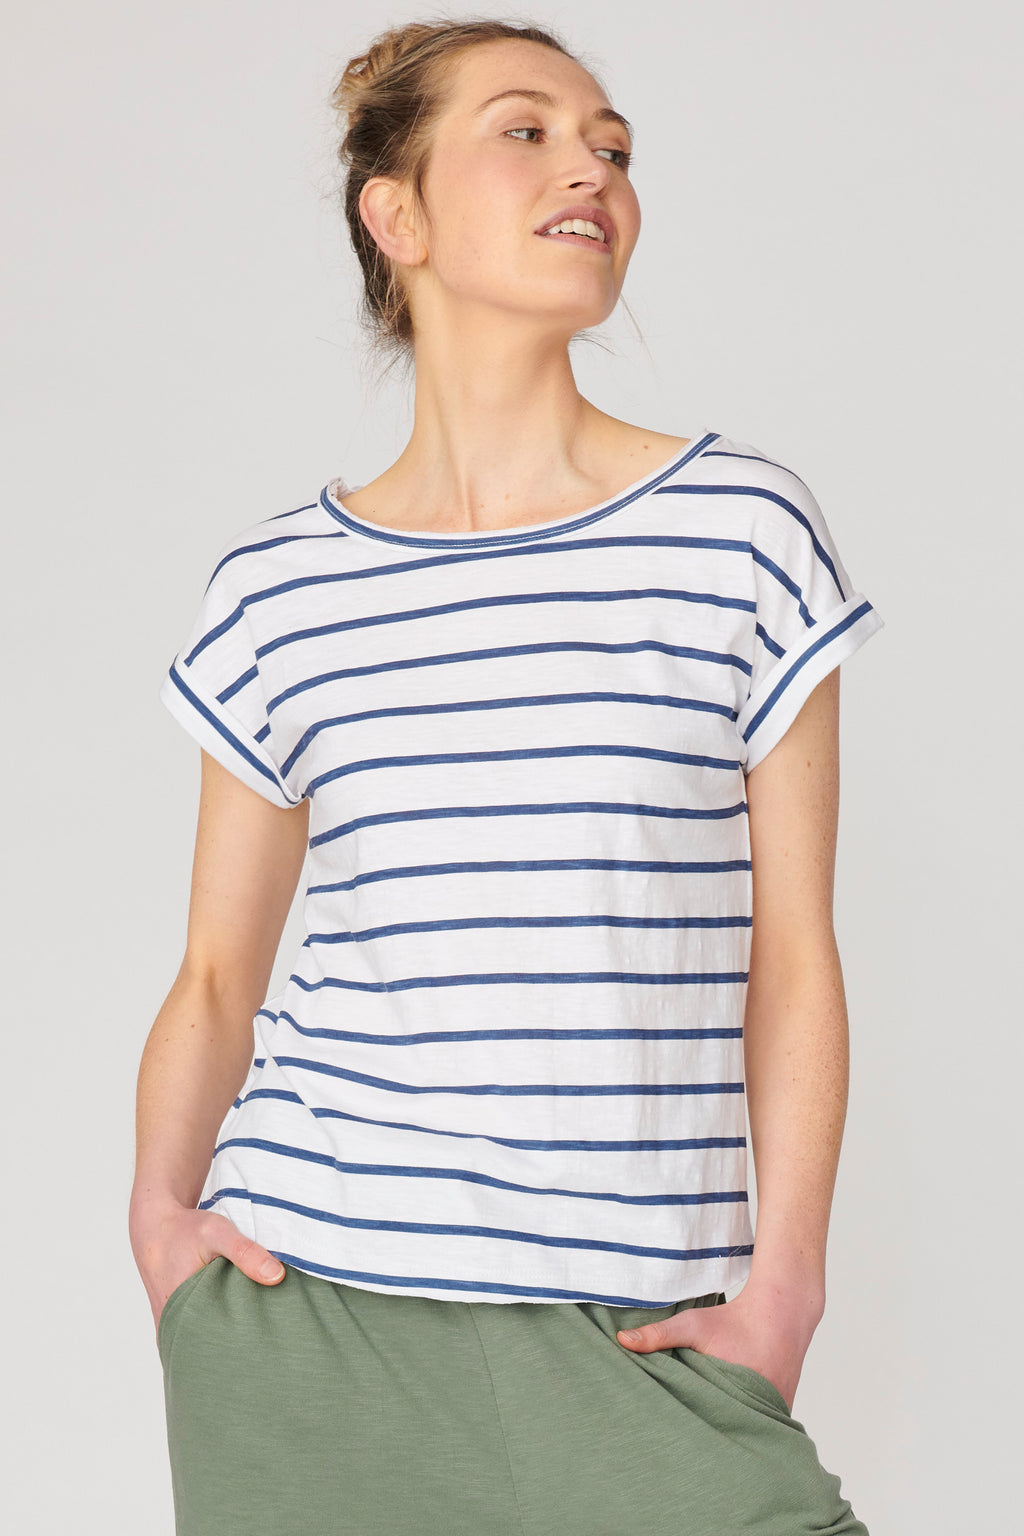 Lulu Organic Cotton Essentials - Santa Barbara Round Neck Tee Stripes